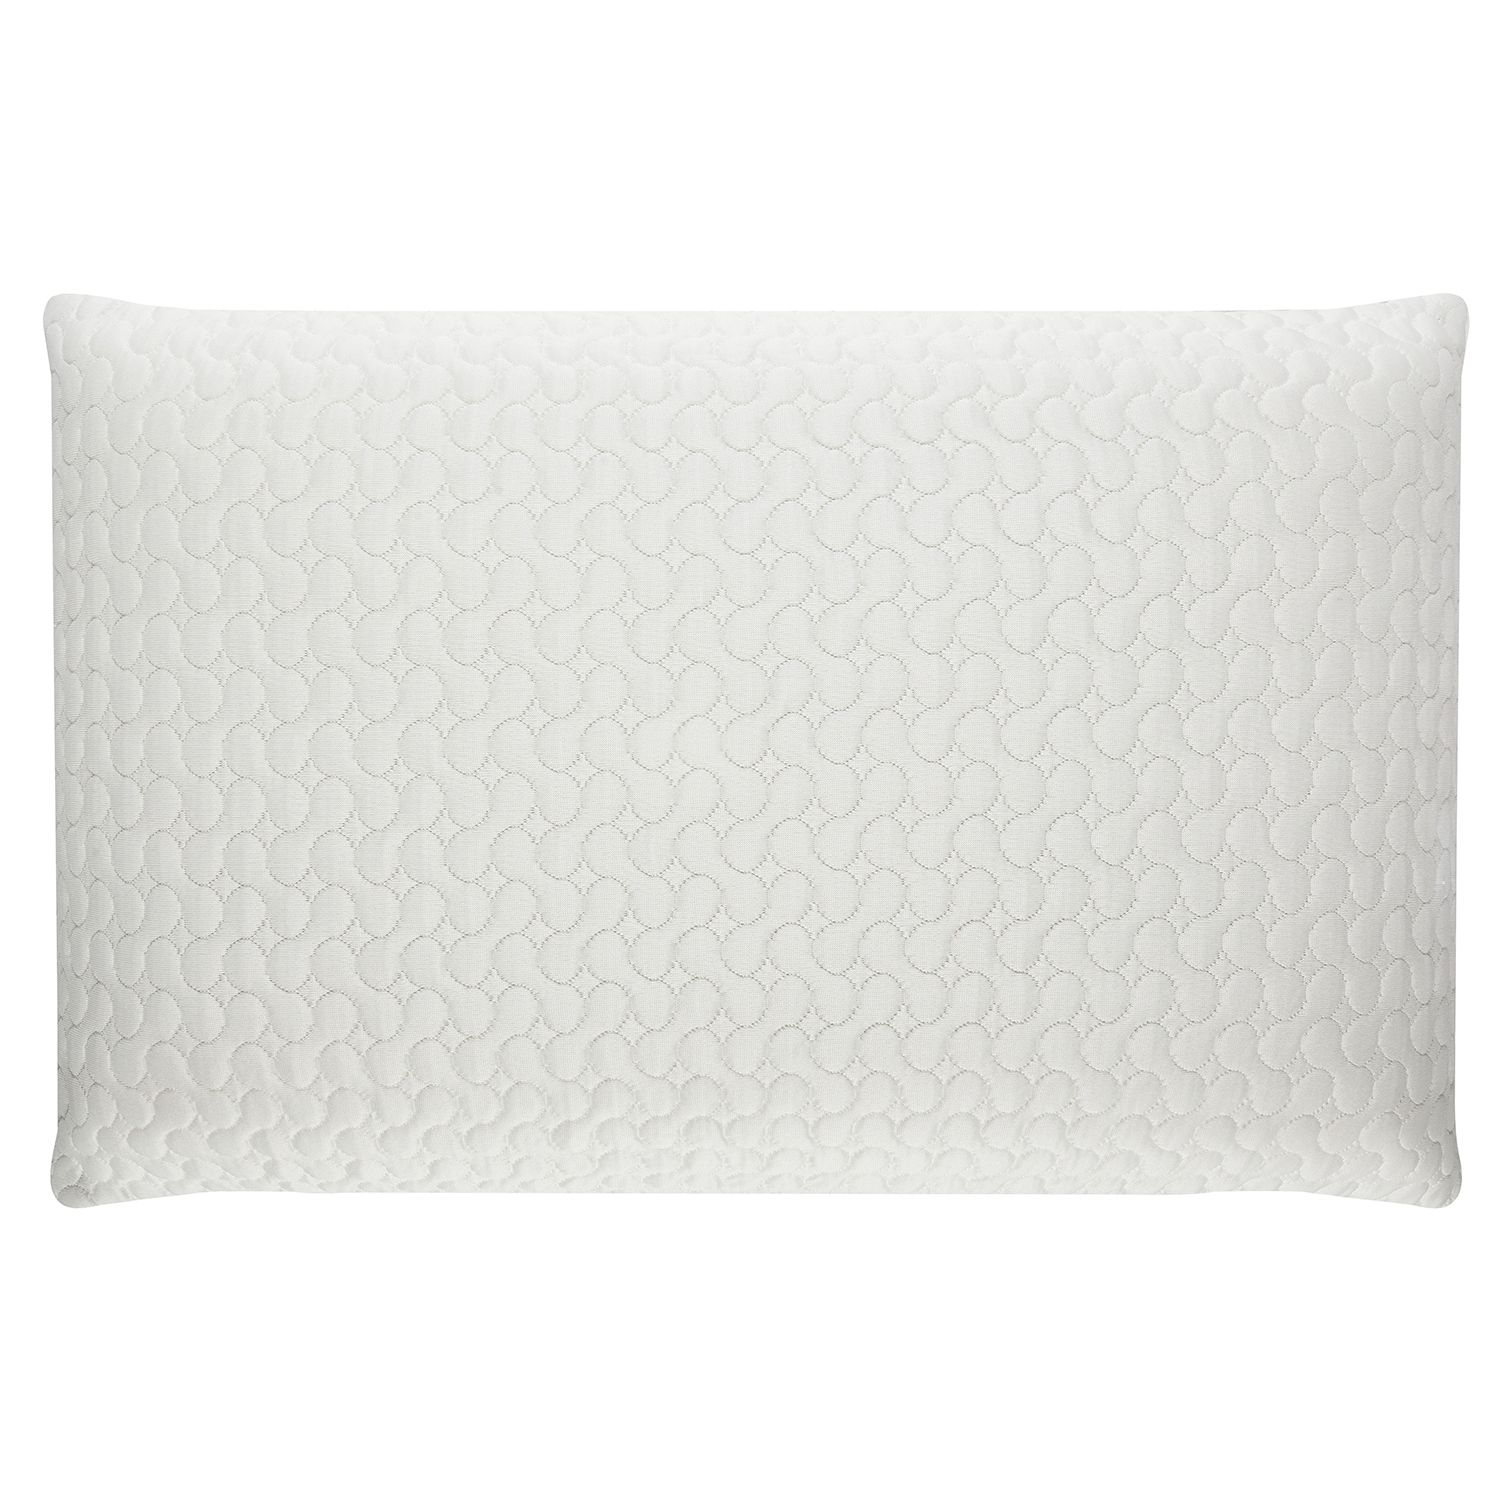 tempurpedic adaptive comfort pillow